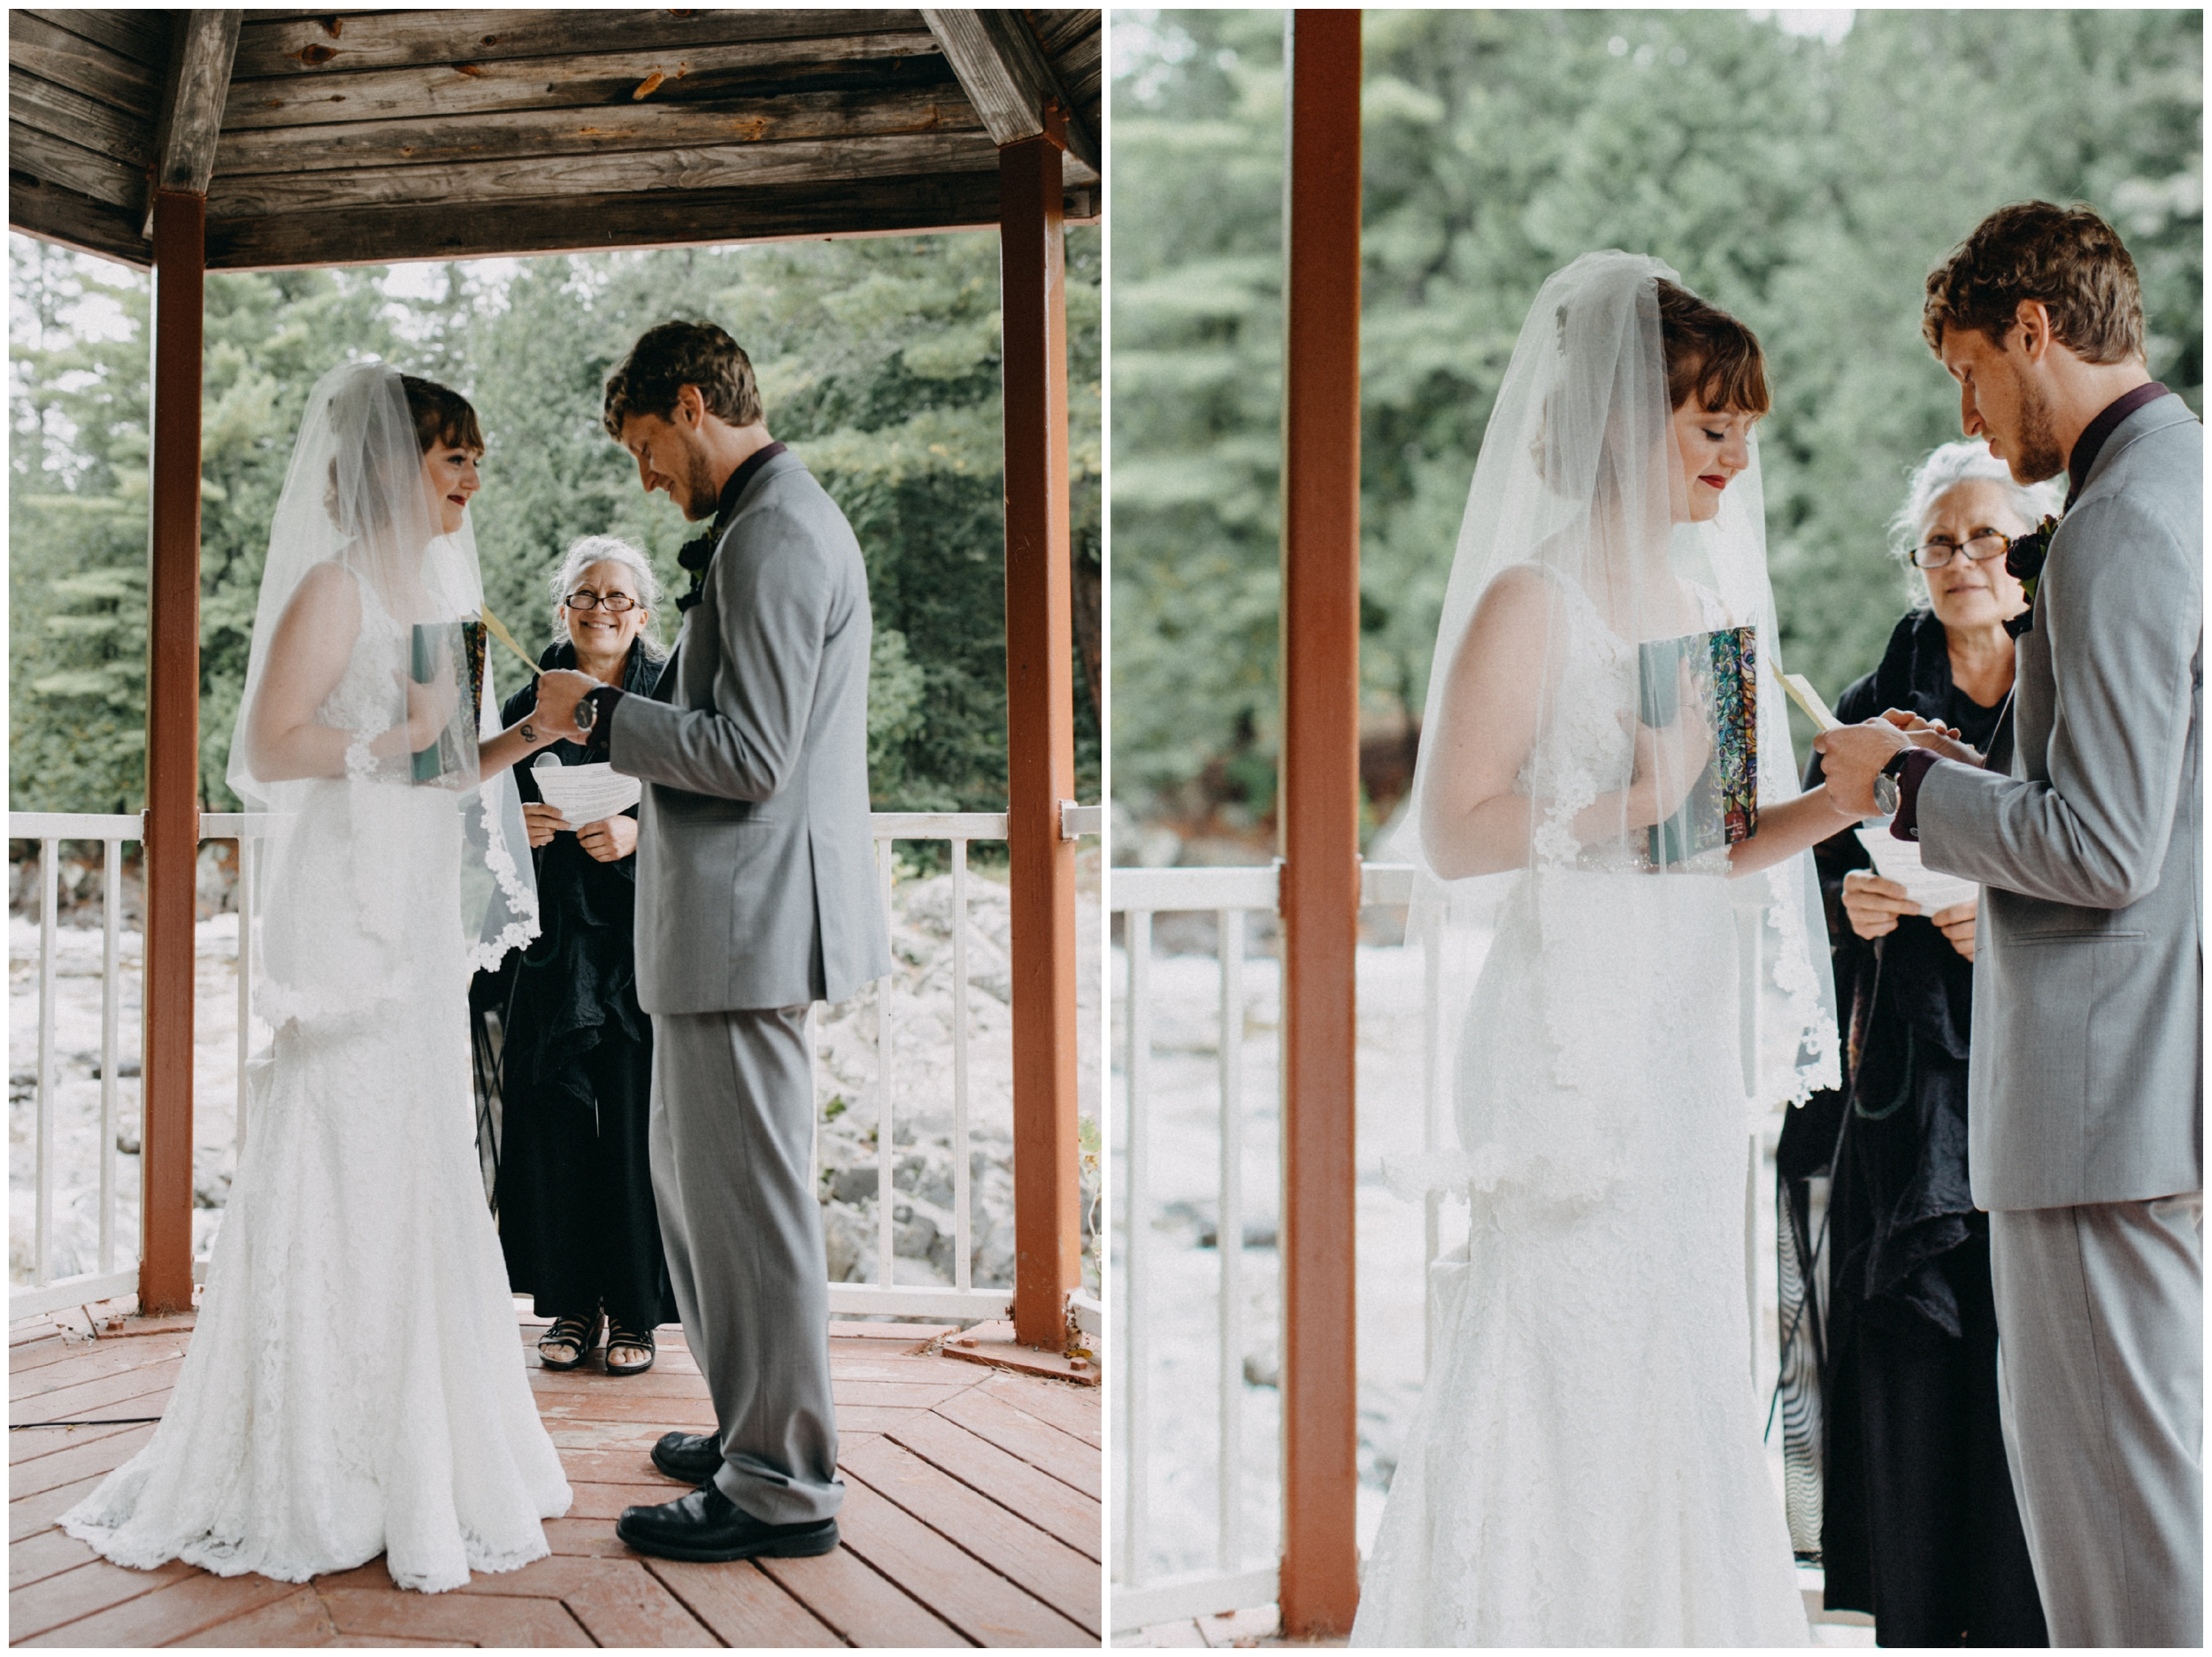 Intimate wedding ceremony at Lester River in Duluth MN